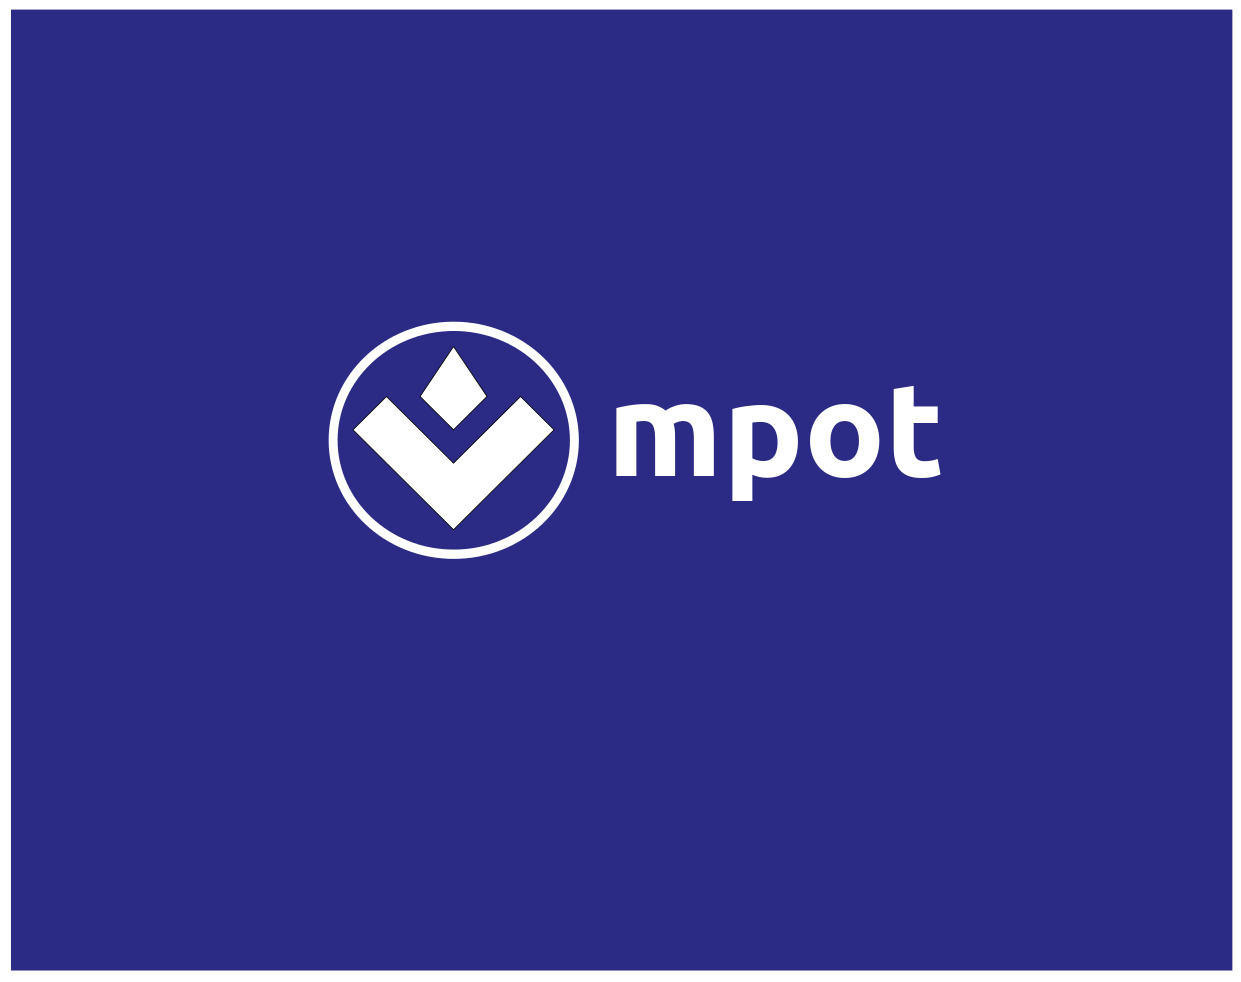 Logo Design by JaroslavProcka - Entry No. 186 in the Logo Design Contest Mpot inc  Logo Design.